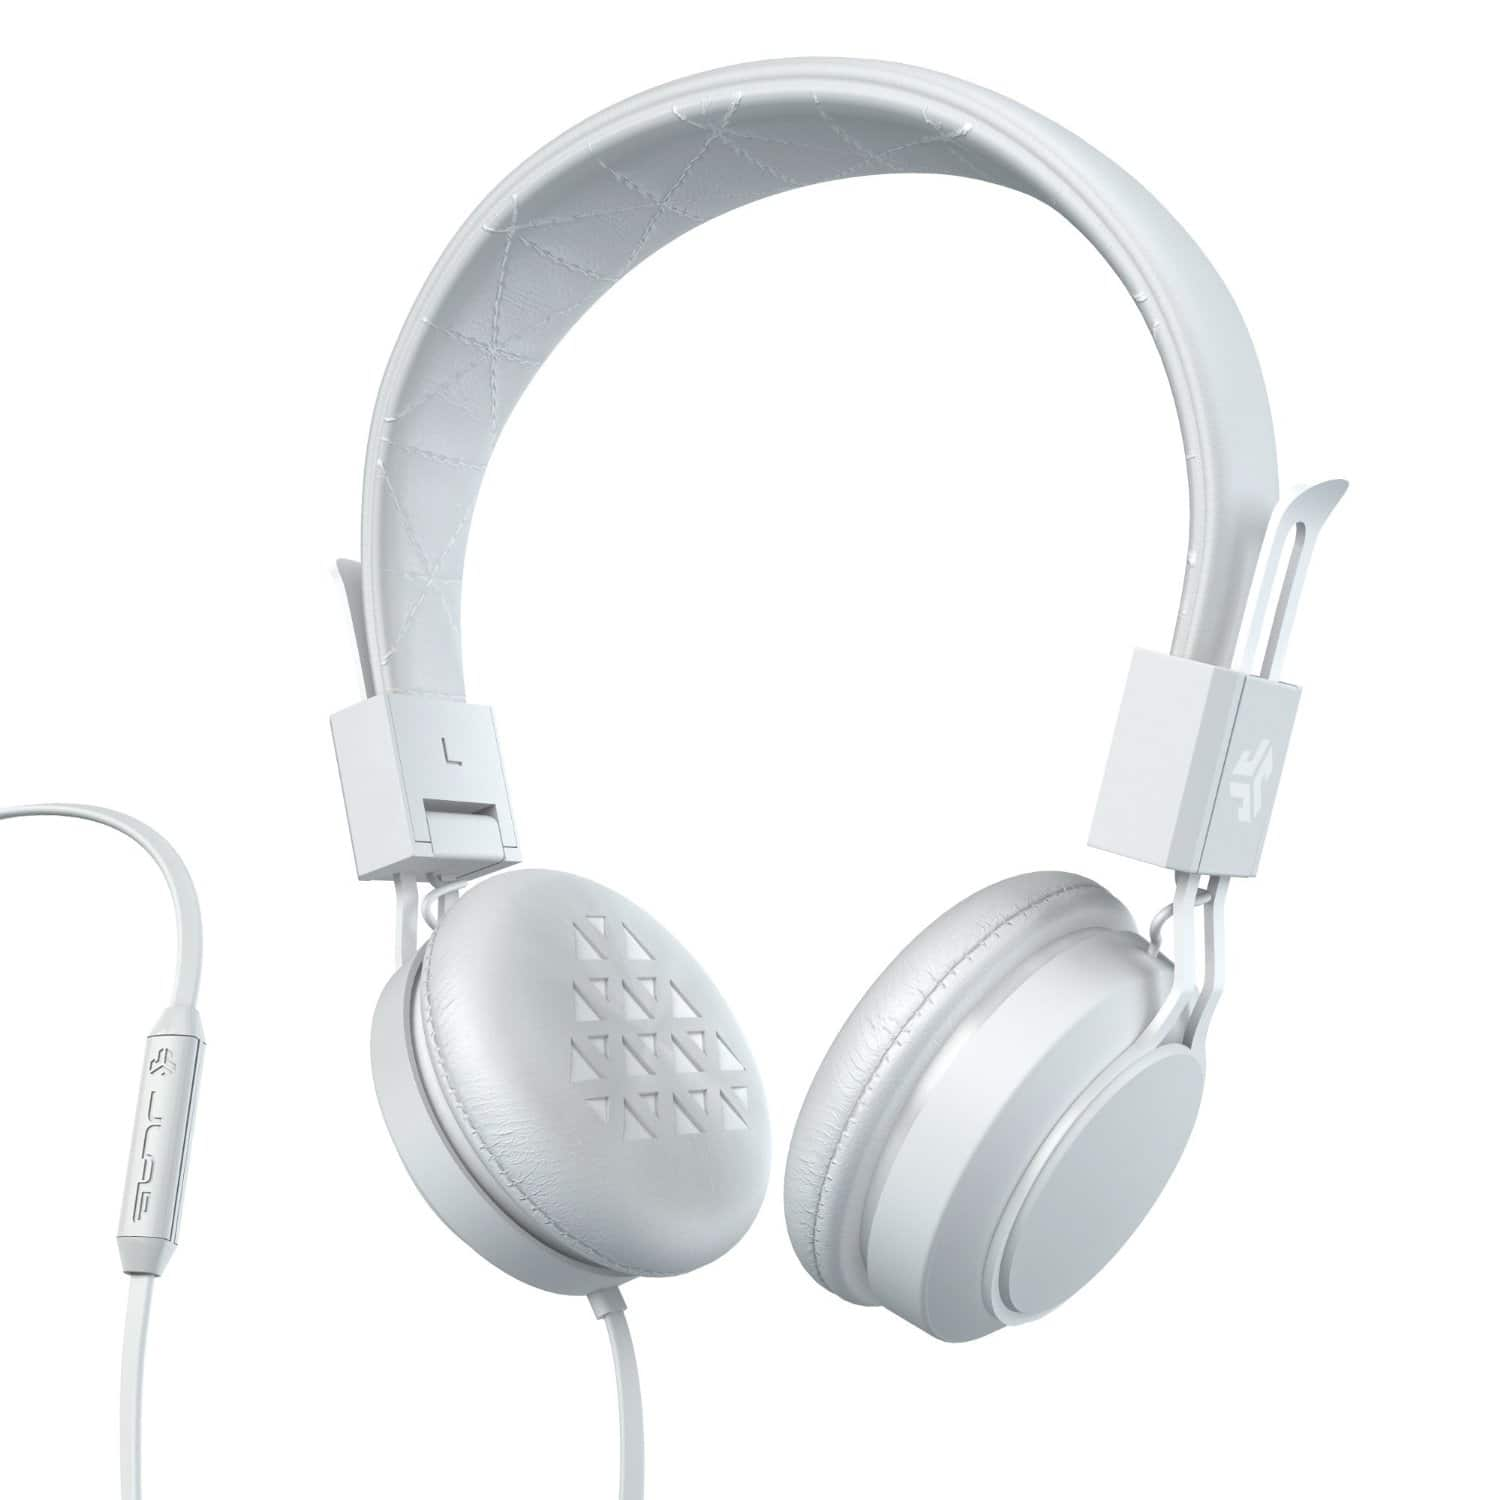 JLab Intro Premium On-Ear Headphones w/ Universal Mic  from $6.90